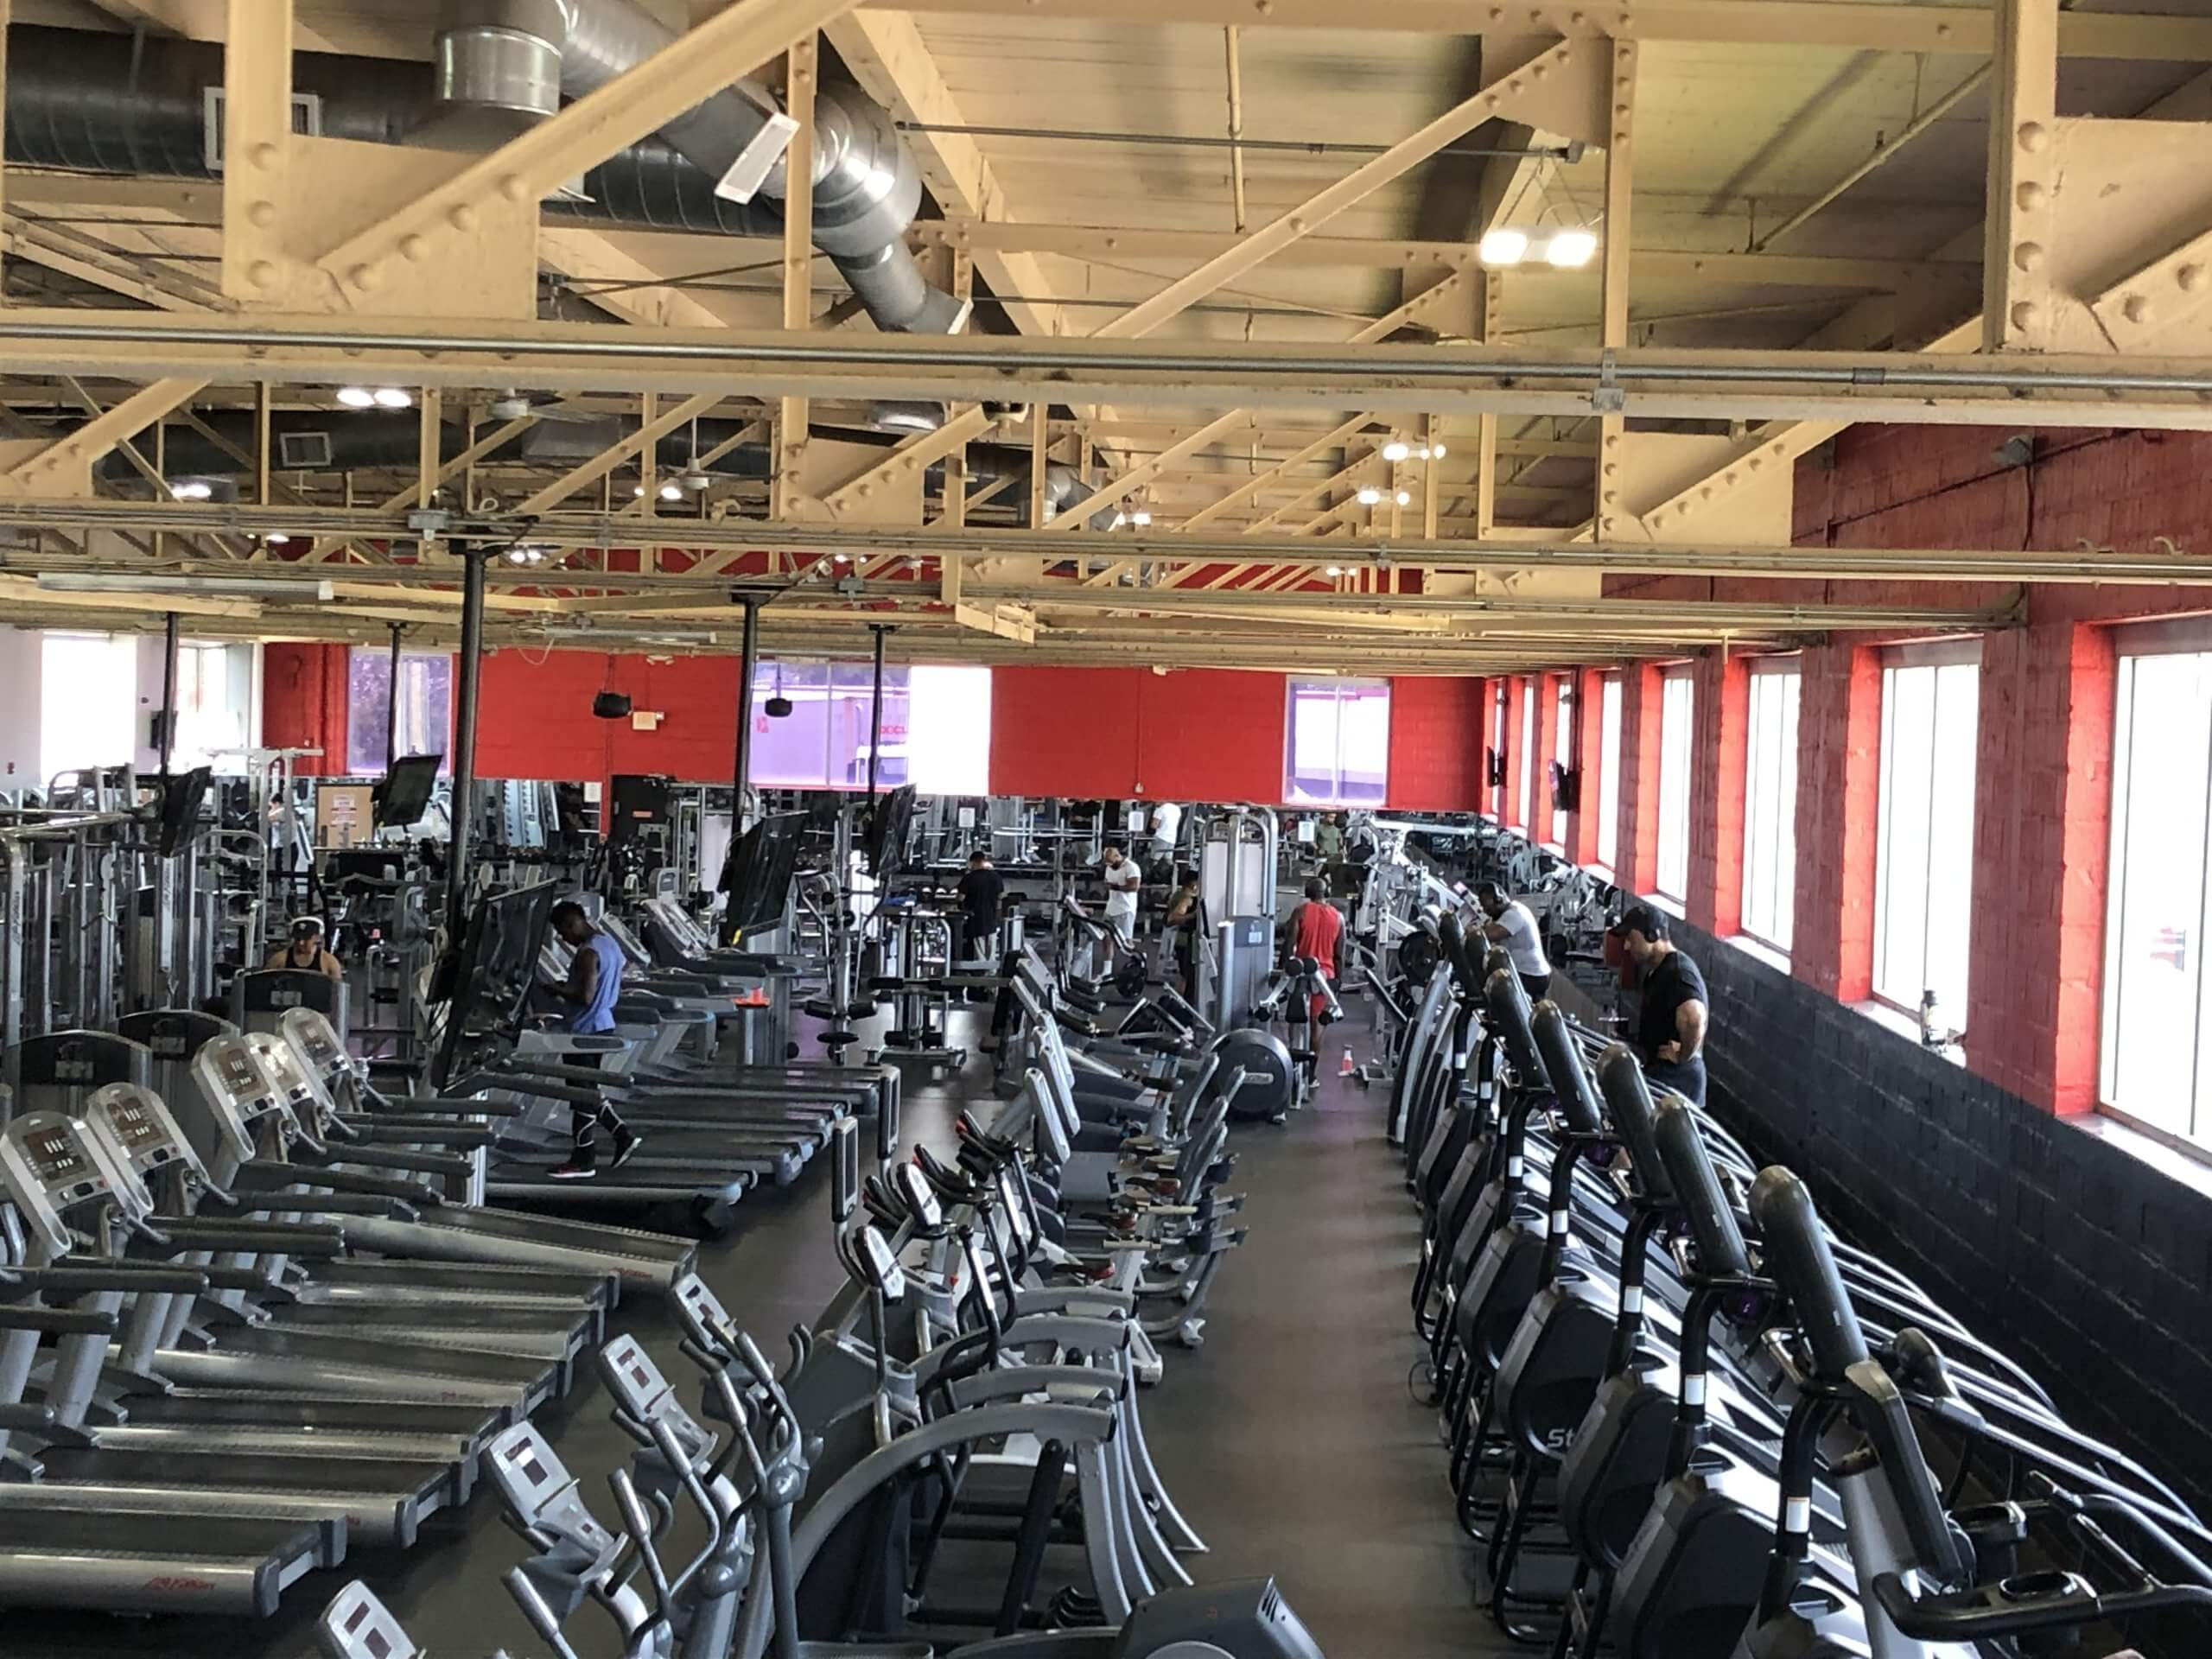 An Image of the Linden, NJ Powerhouse Gym Location